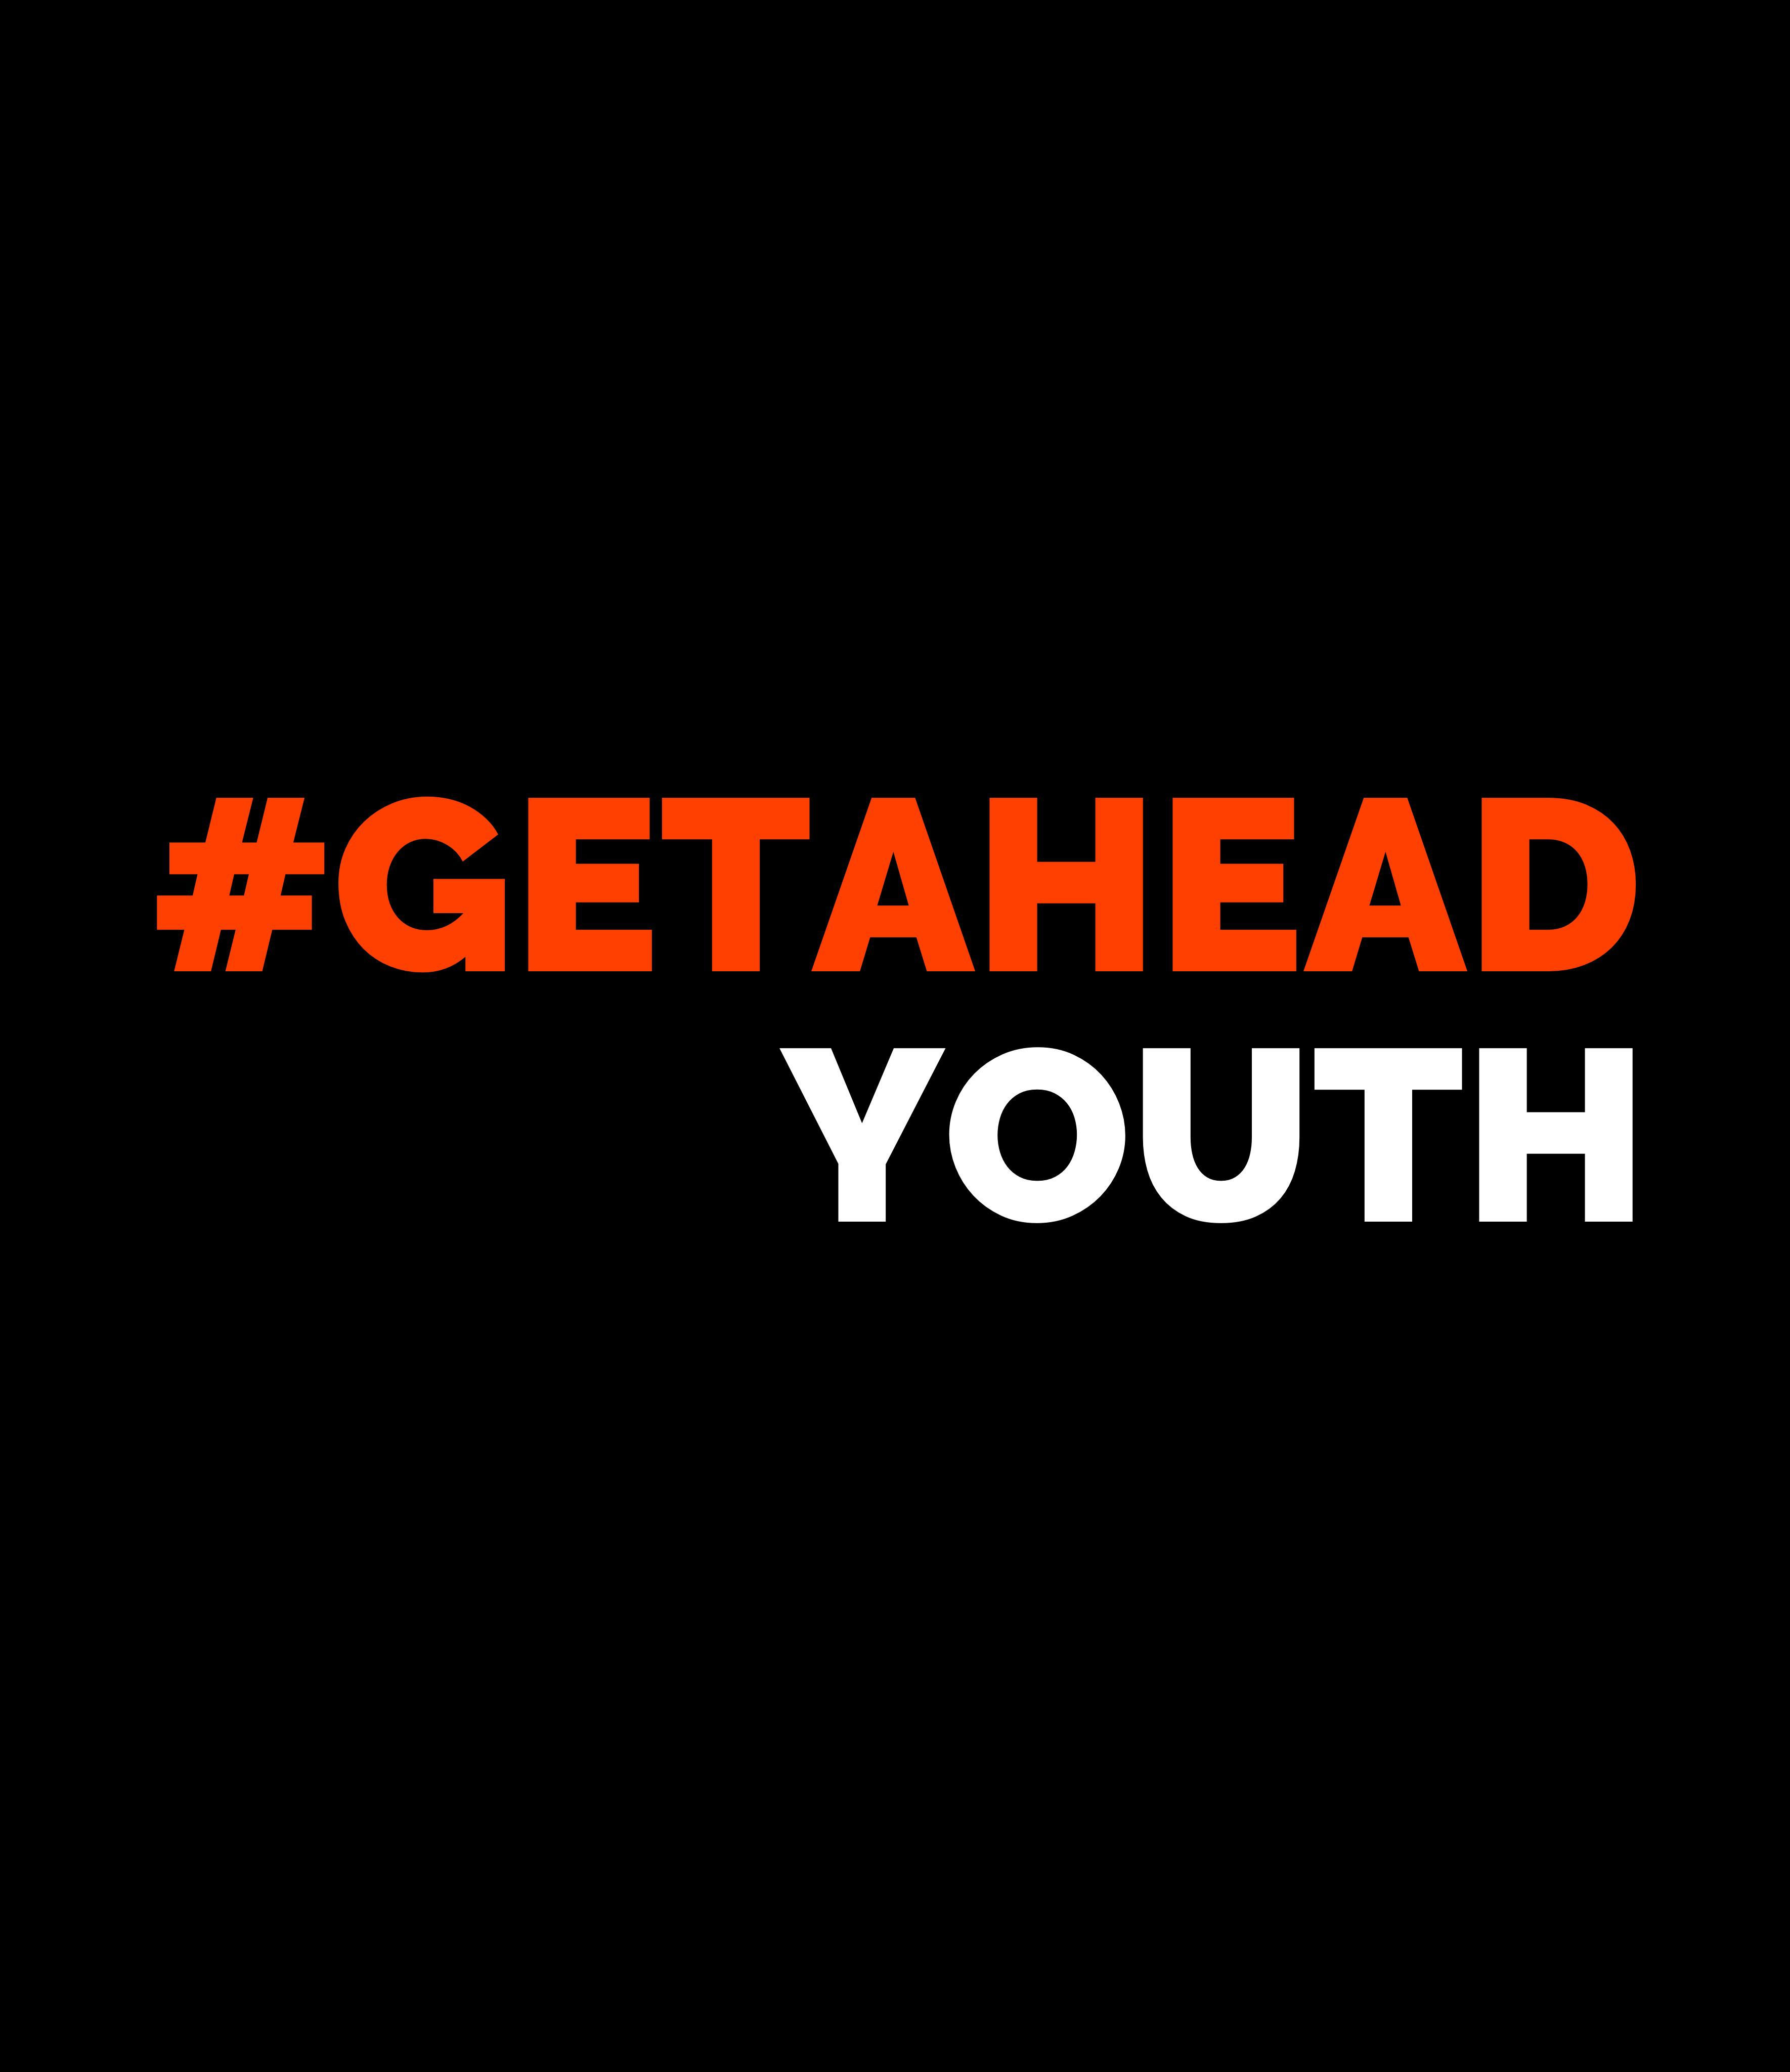 Get Ahead Youth - The London Youth Directory Logo